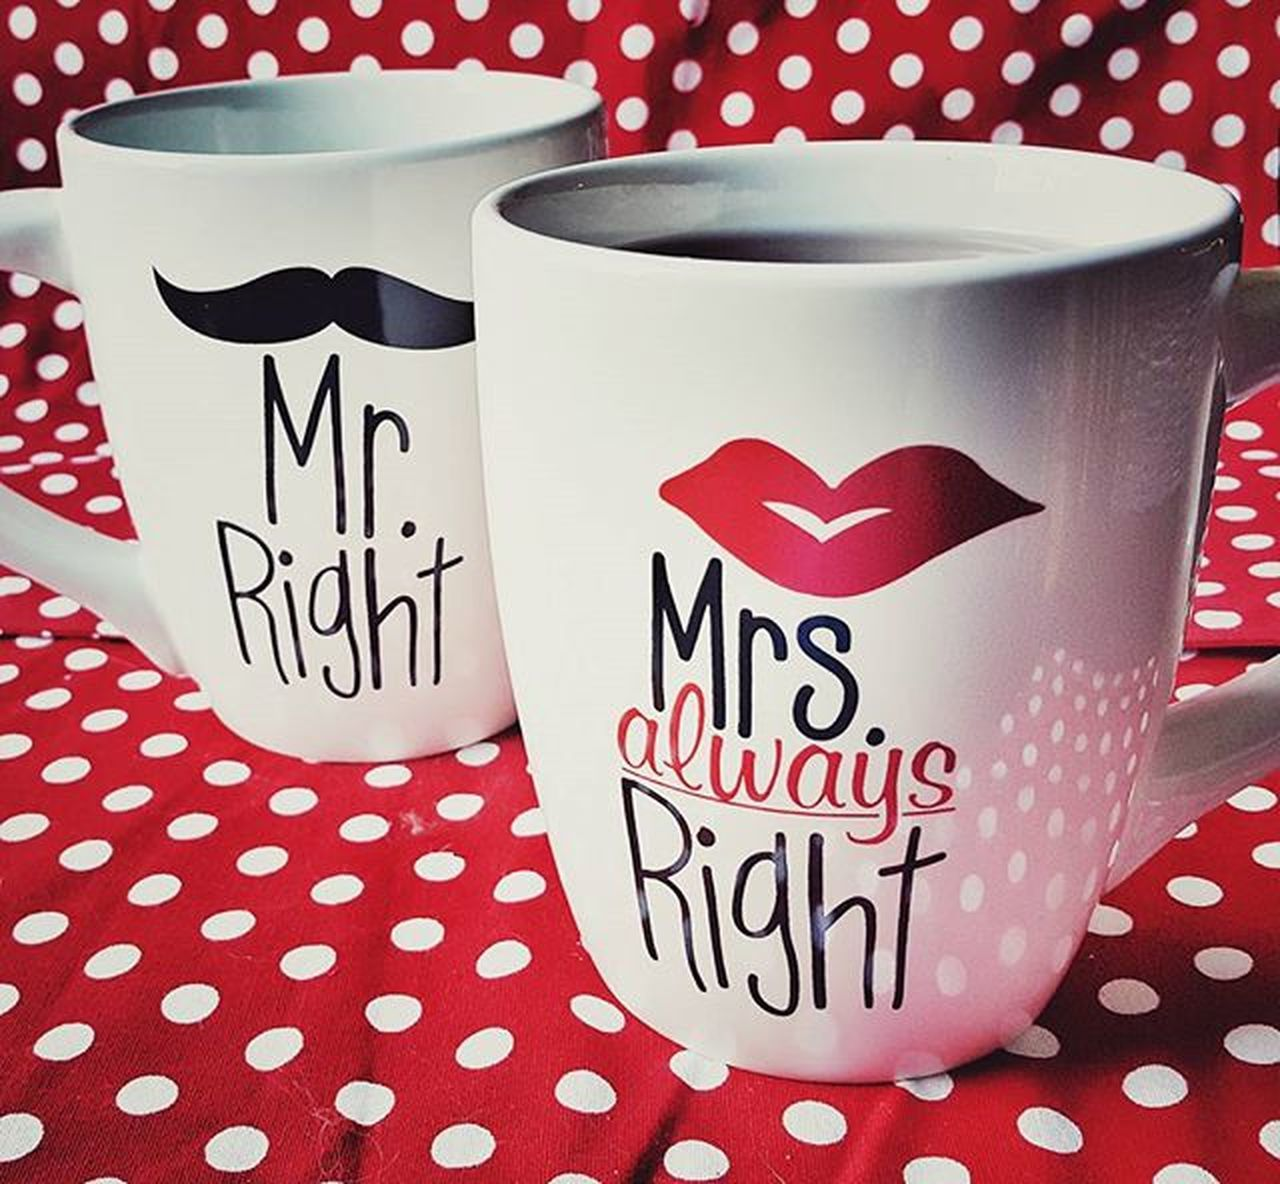 Love cups🍵☕😍😚 Love Tea Coffee Perfectmatch Cup October Teatime Autumn Mrright Mrsright